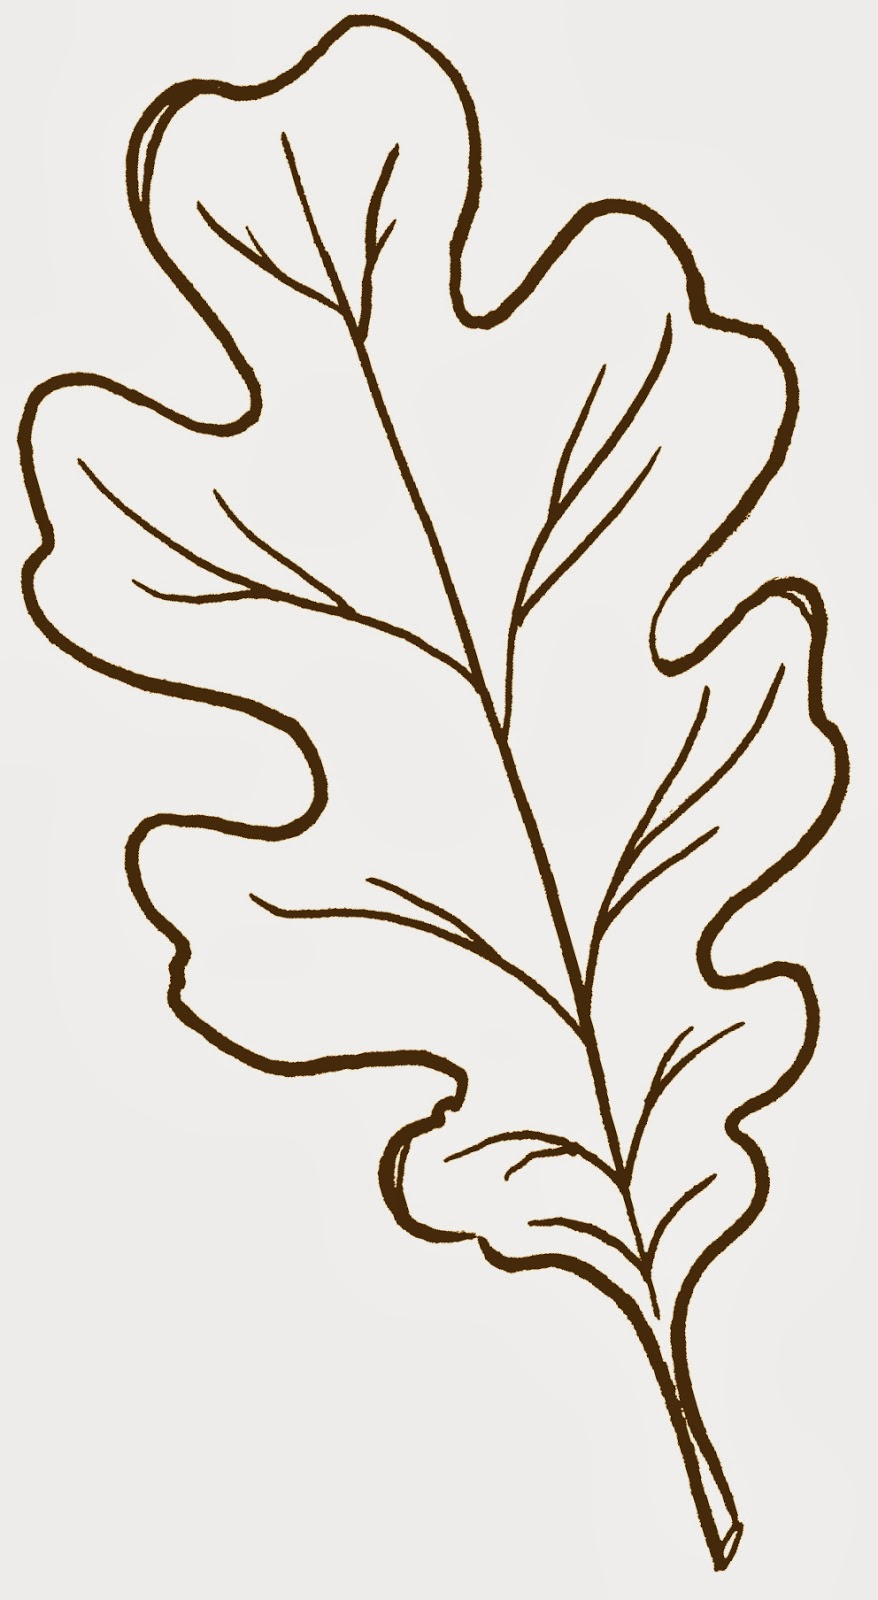 White oak leaf clipart clipart freeuse library Free Picture Of Oak Leaves, Download Free Clip Art, Free ... clipart freeuse library